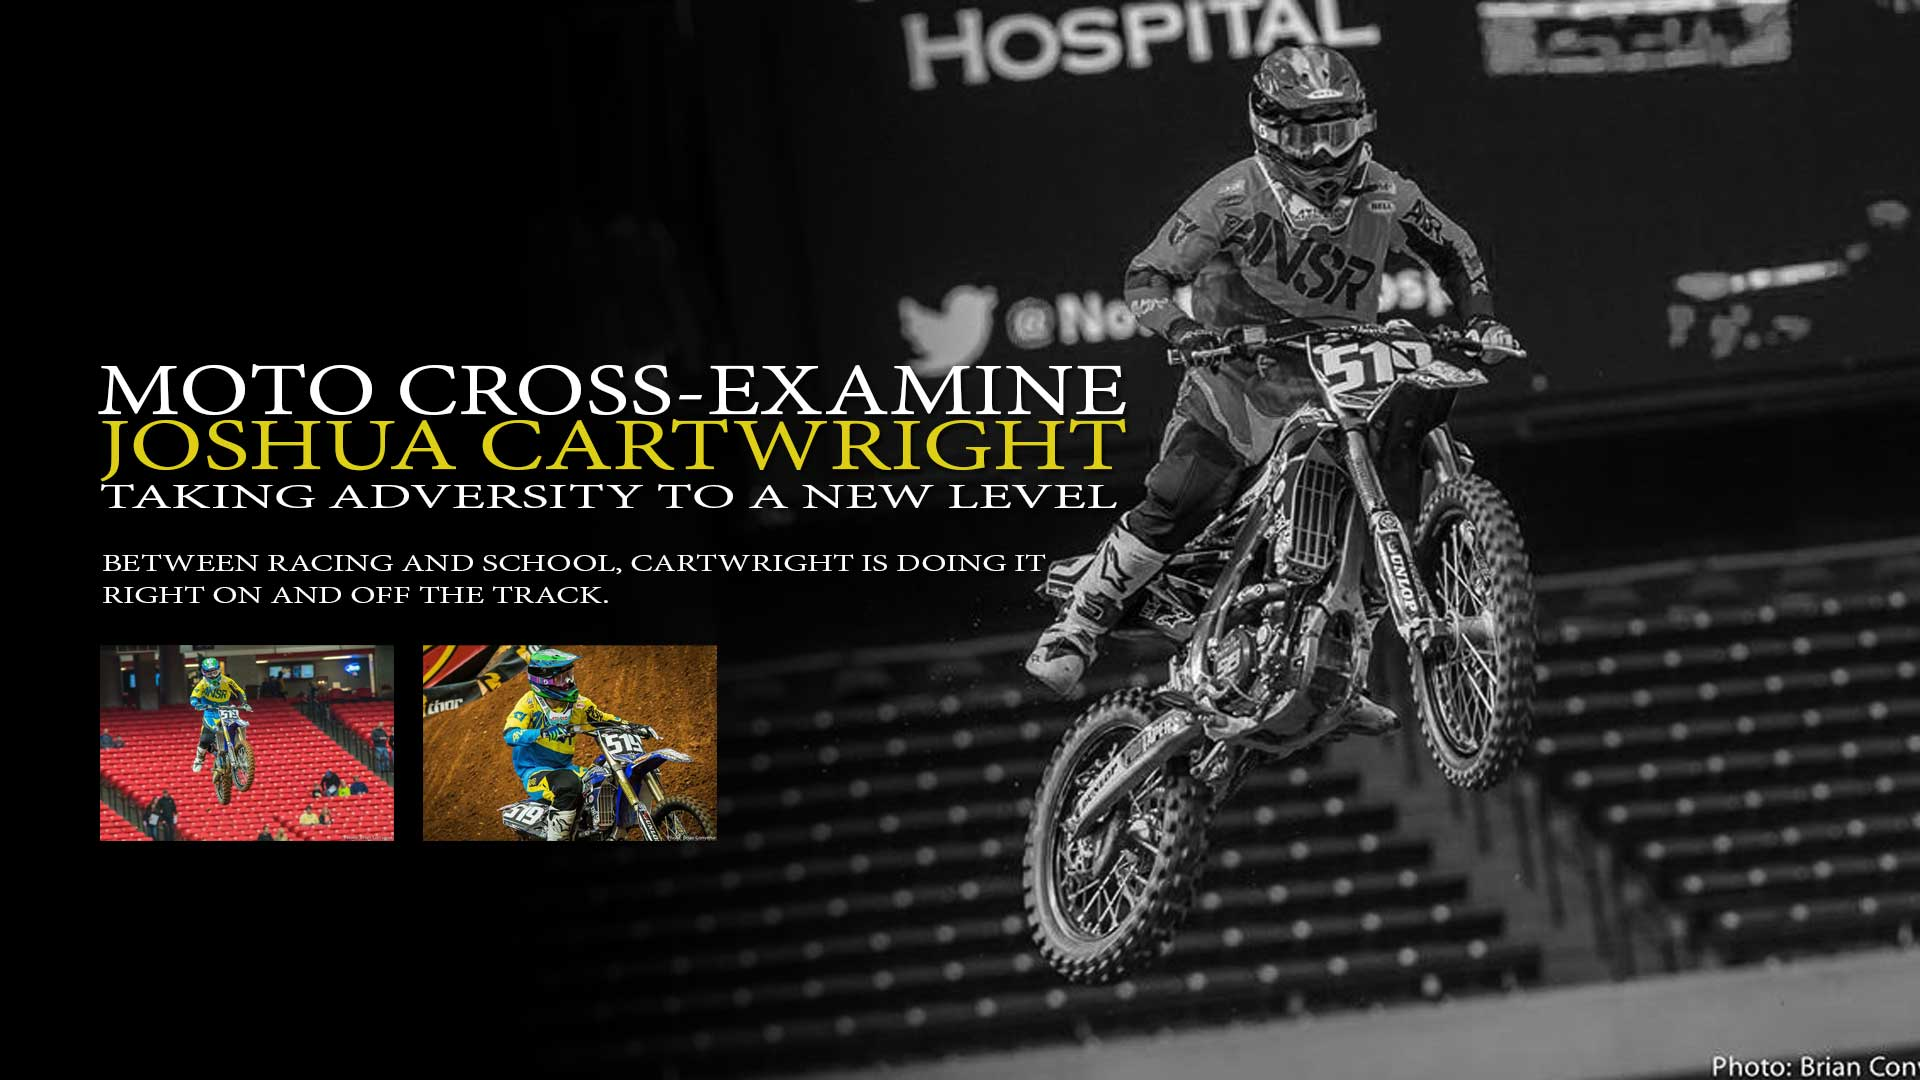 Moto Cross-Examine: Joshua Cartwright